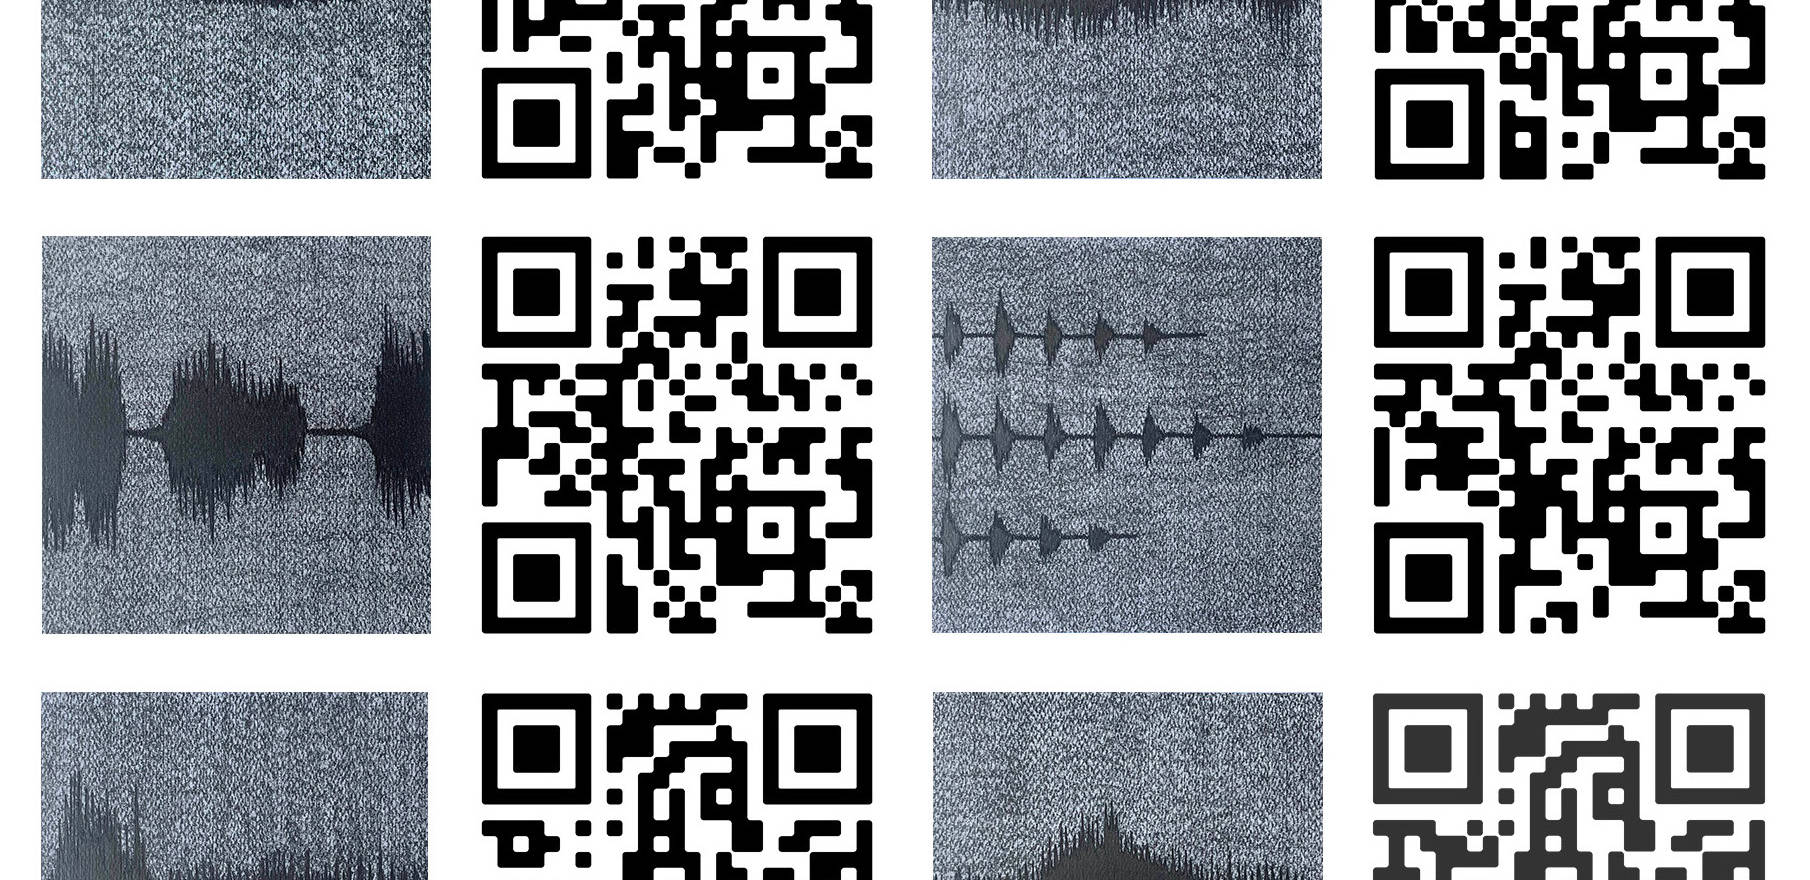 Spectography (temporal envelope) 2021. (detail) 20 Reliefs. 7.87 x 7.87 x 1.5 inches each 20 x 20 cm. each Graphite drawing of a spectrograph and QR of the sound of the following species: Whale, Horses, Crocodrile, Parrot, Elephant, Sea Lion, Leopard, Wolfs, Baboon and Bear.